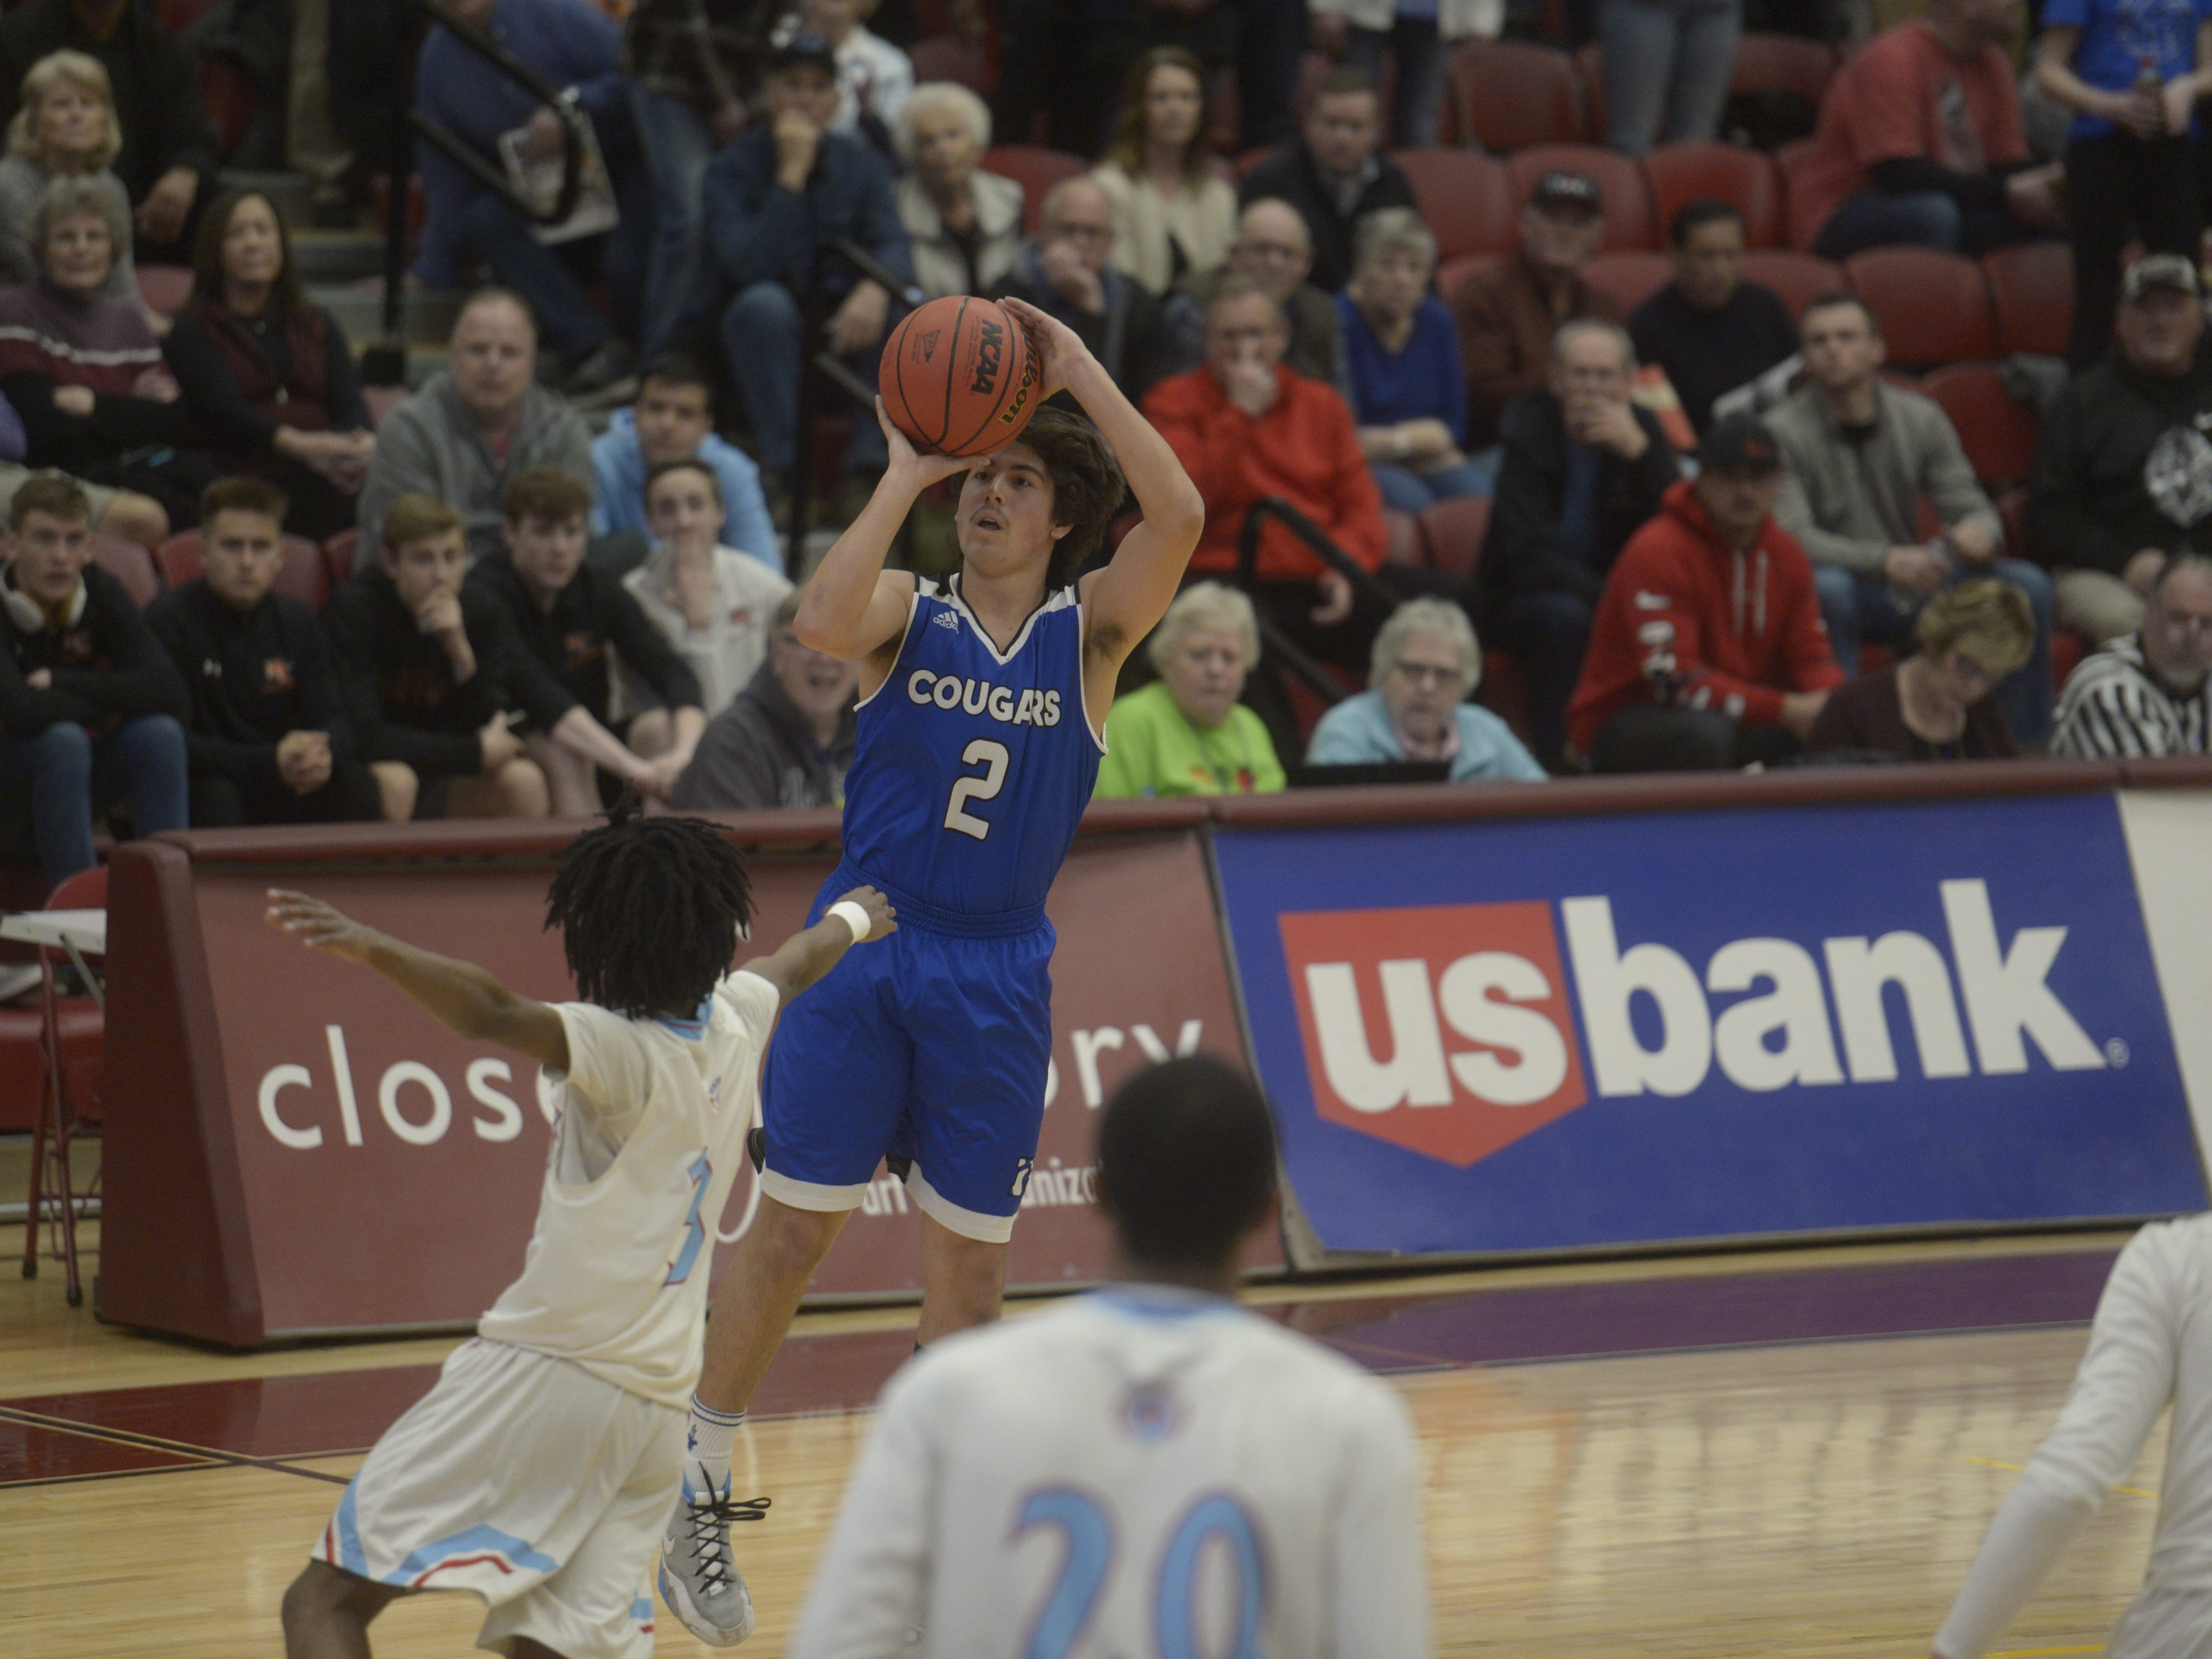 Resurrection Christian basketball guard Jackson Romero fires a 3-pointer during a Class 3A quarterfinals game against Manual at the University of Denver on Thursday, March 7, 2019.